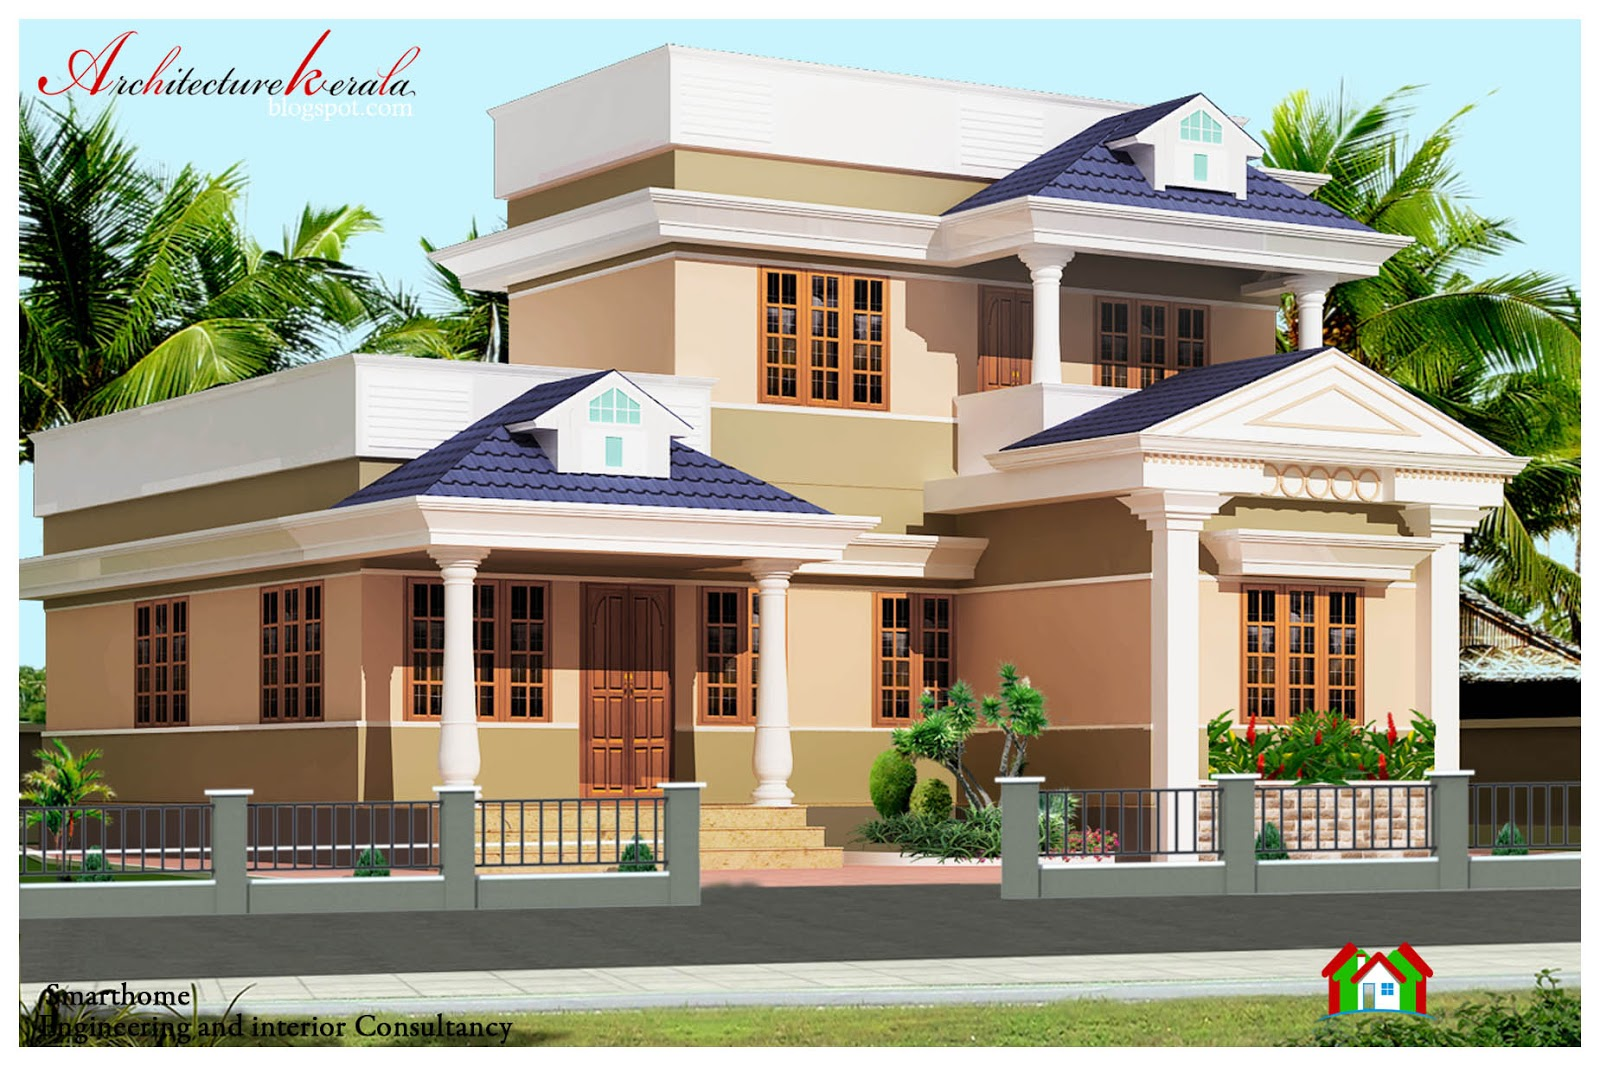 Architecture kerala 1000 sq ft kerala style house plan for Home designs kerala style